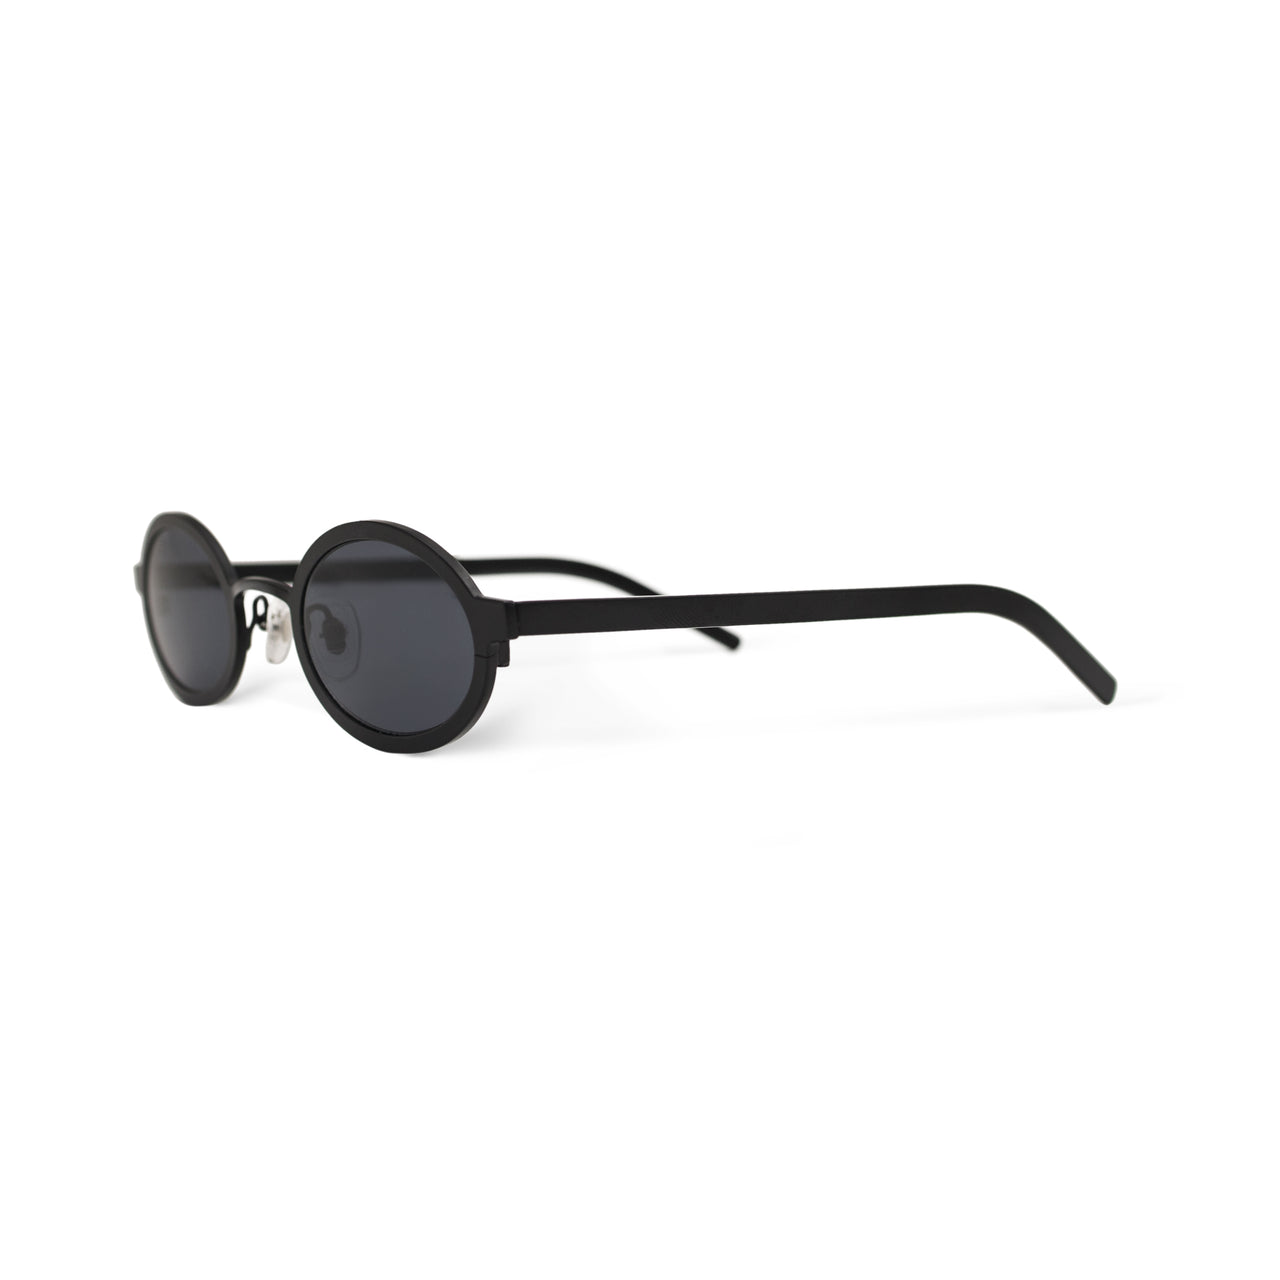 Metal. Matte Black. Black Lens. - BLYSZAK eyewear eyewear - eyewear, optical, sunglasses